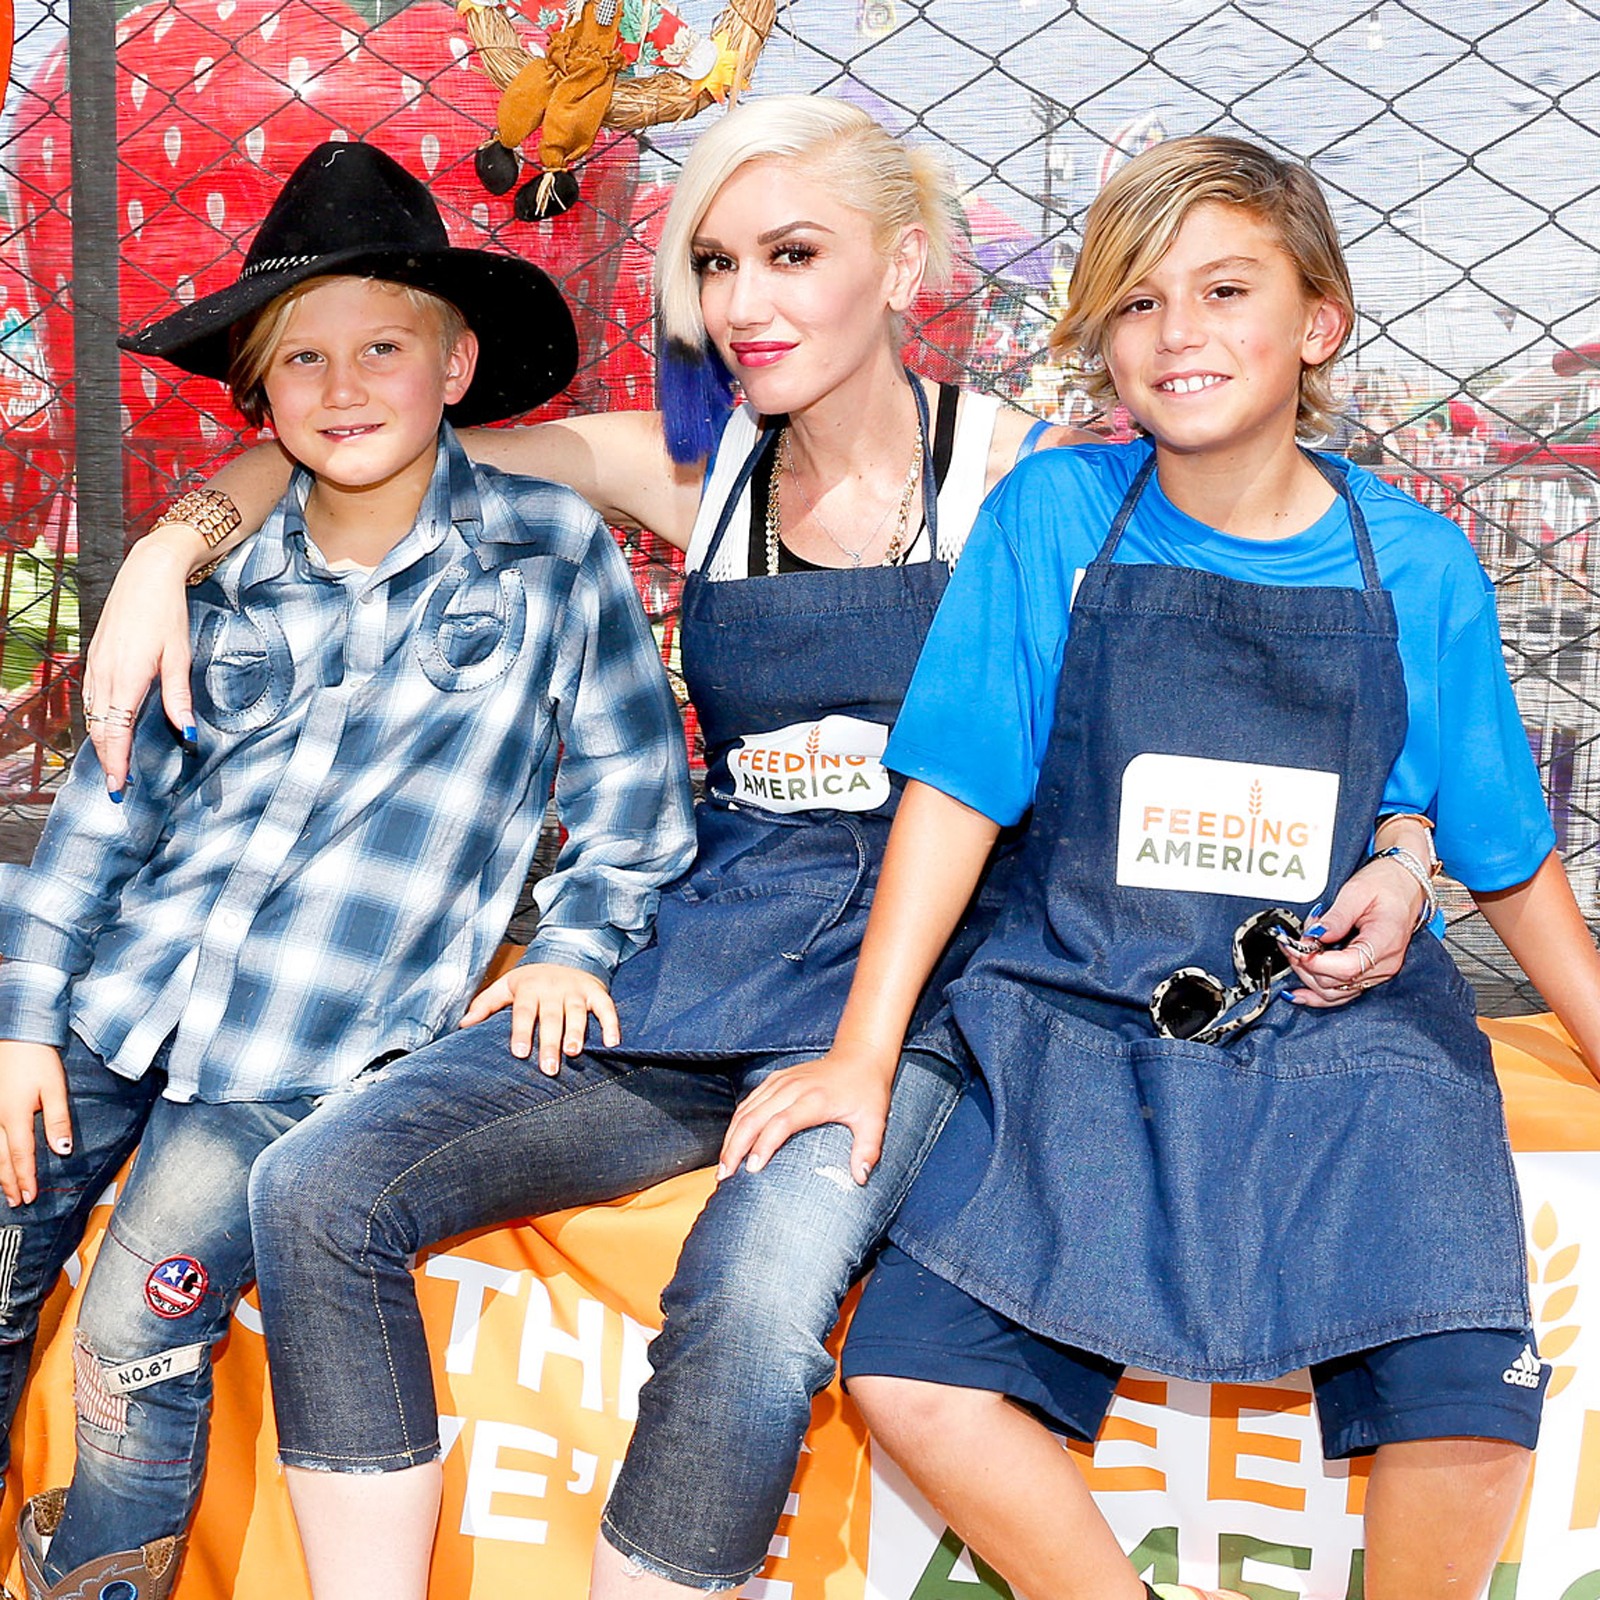 Zuma Rossdale, Gwen Stefani and Kingston Rossdale